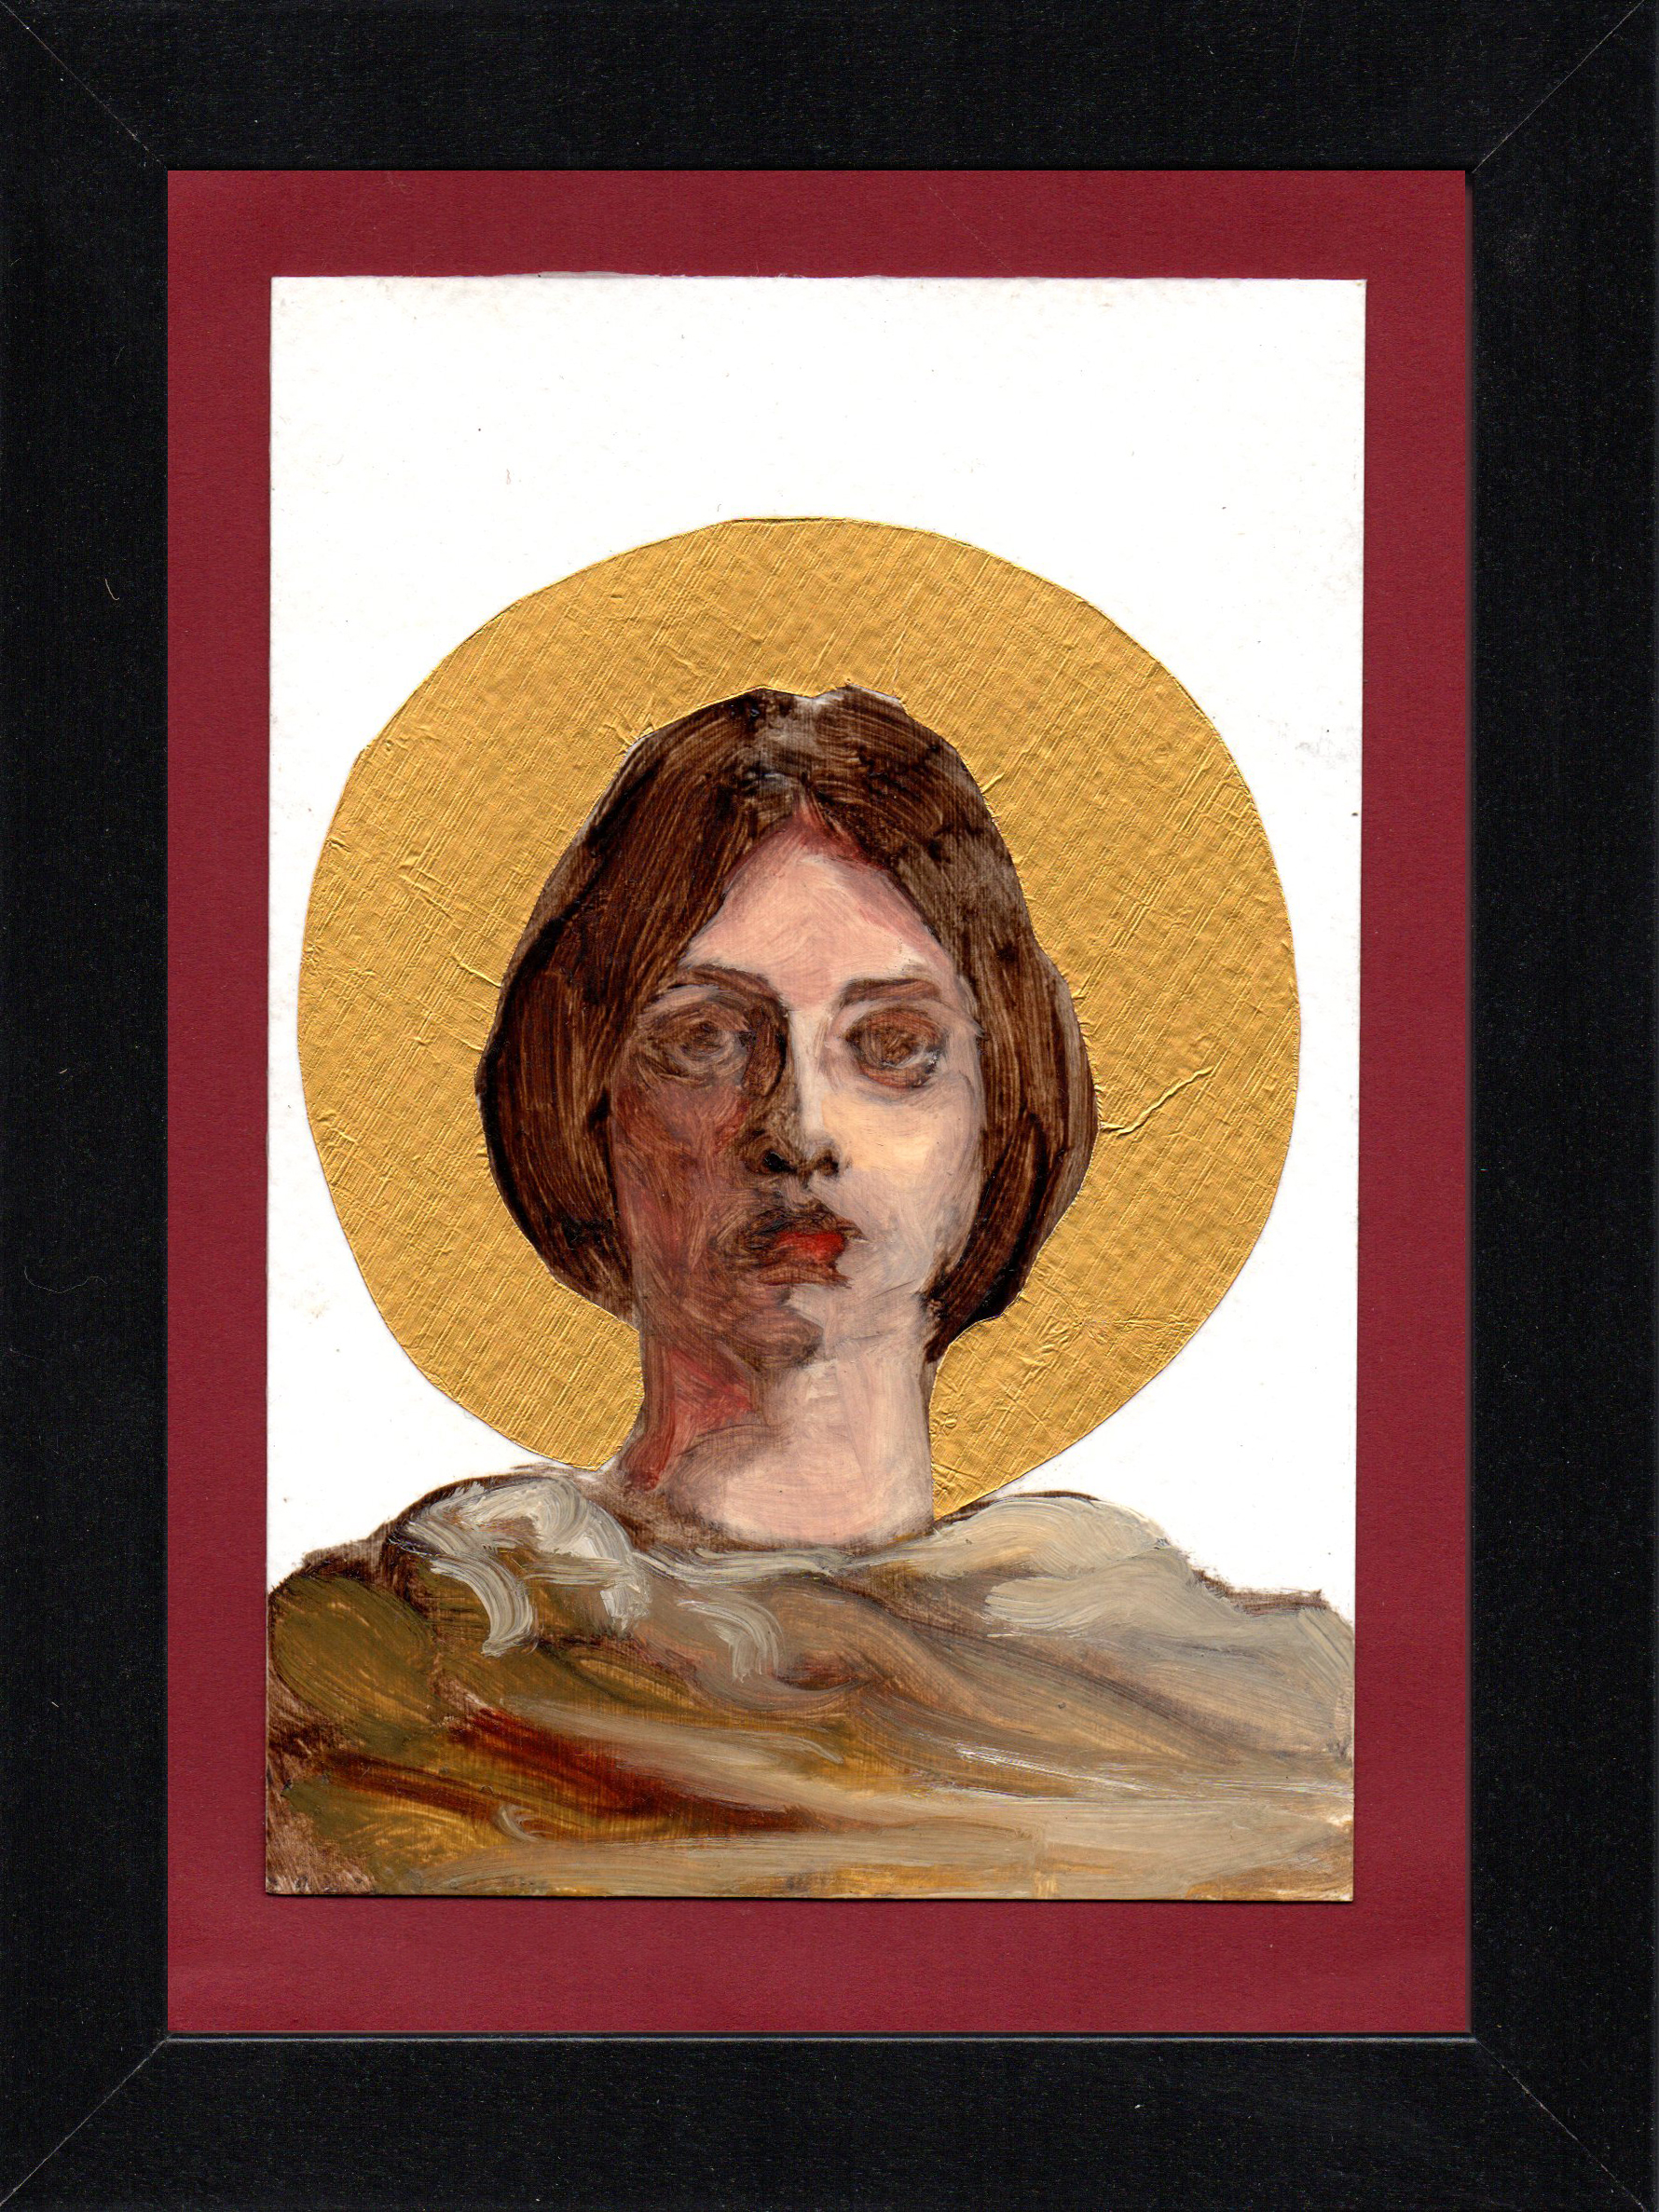 "Postcard Saint 4, oil & gold foil on paper 10.5 x 15 cm (4"" x 6""), 2016"